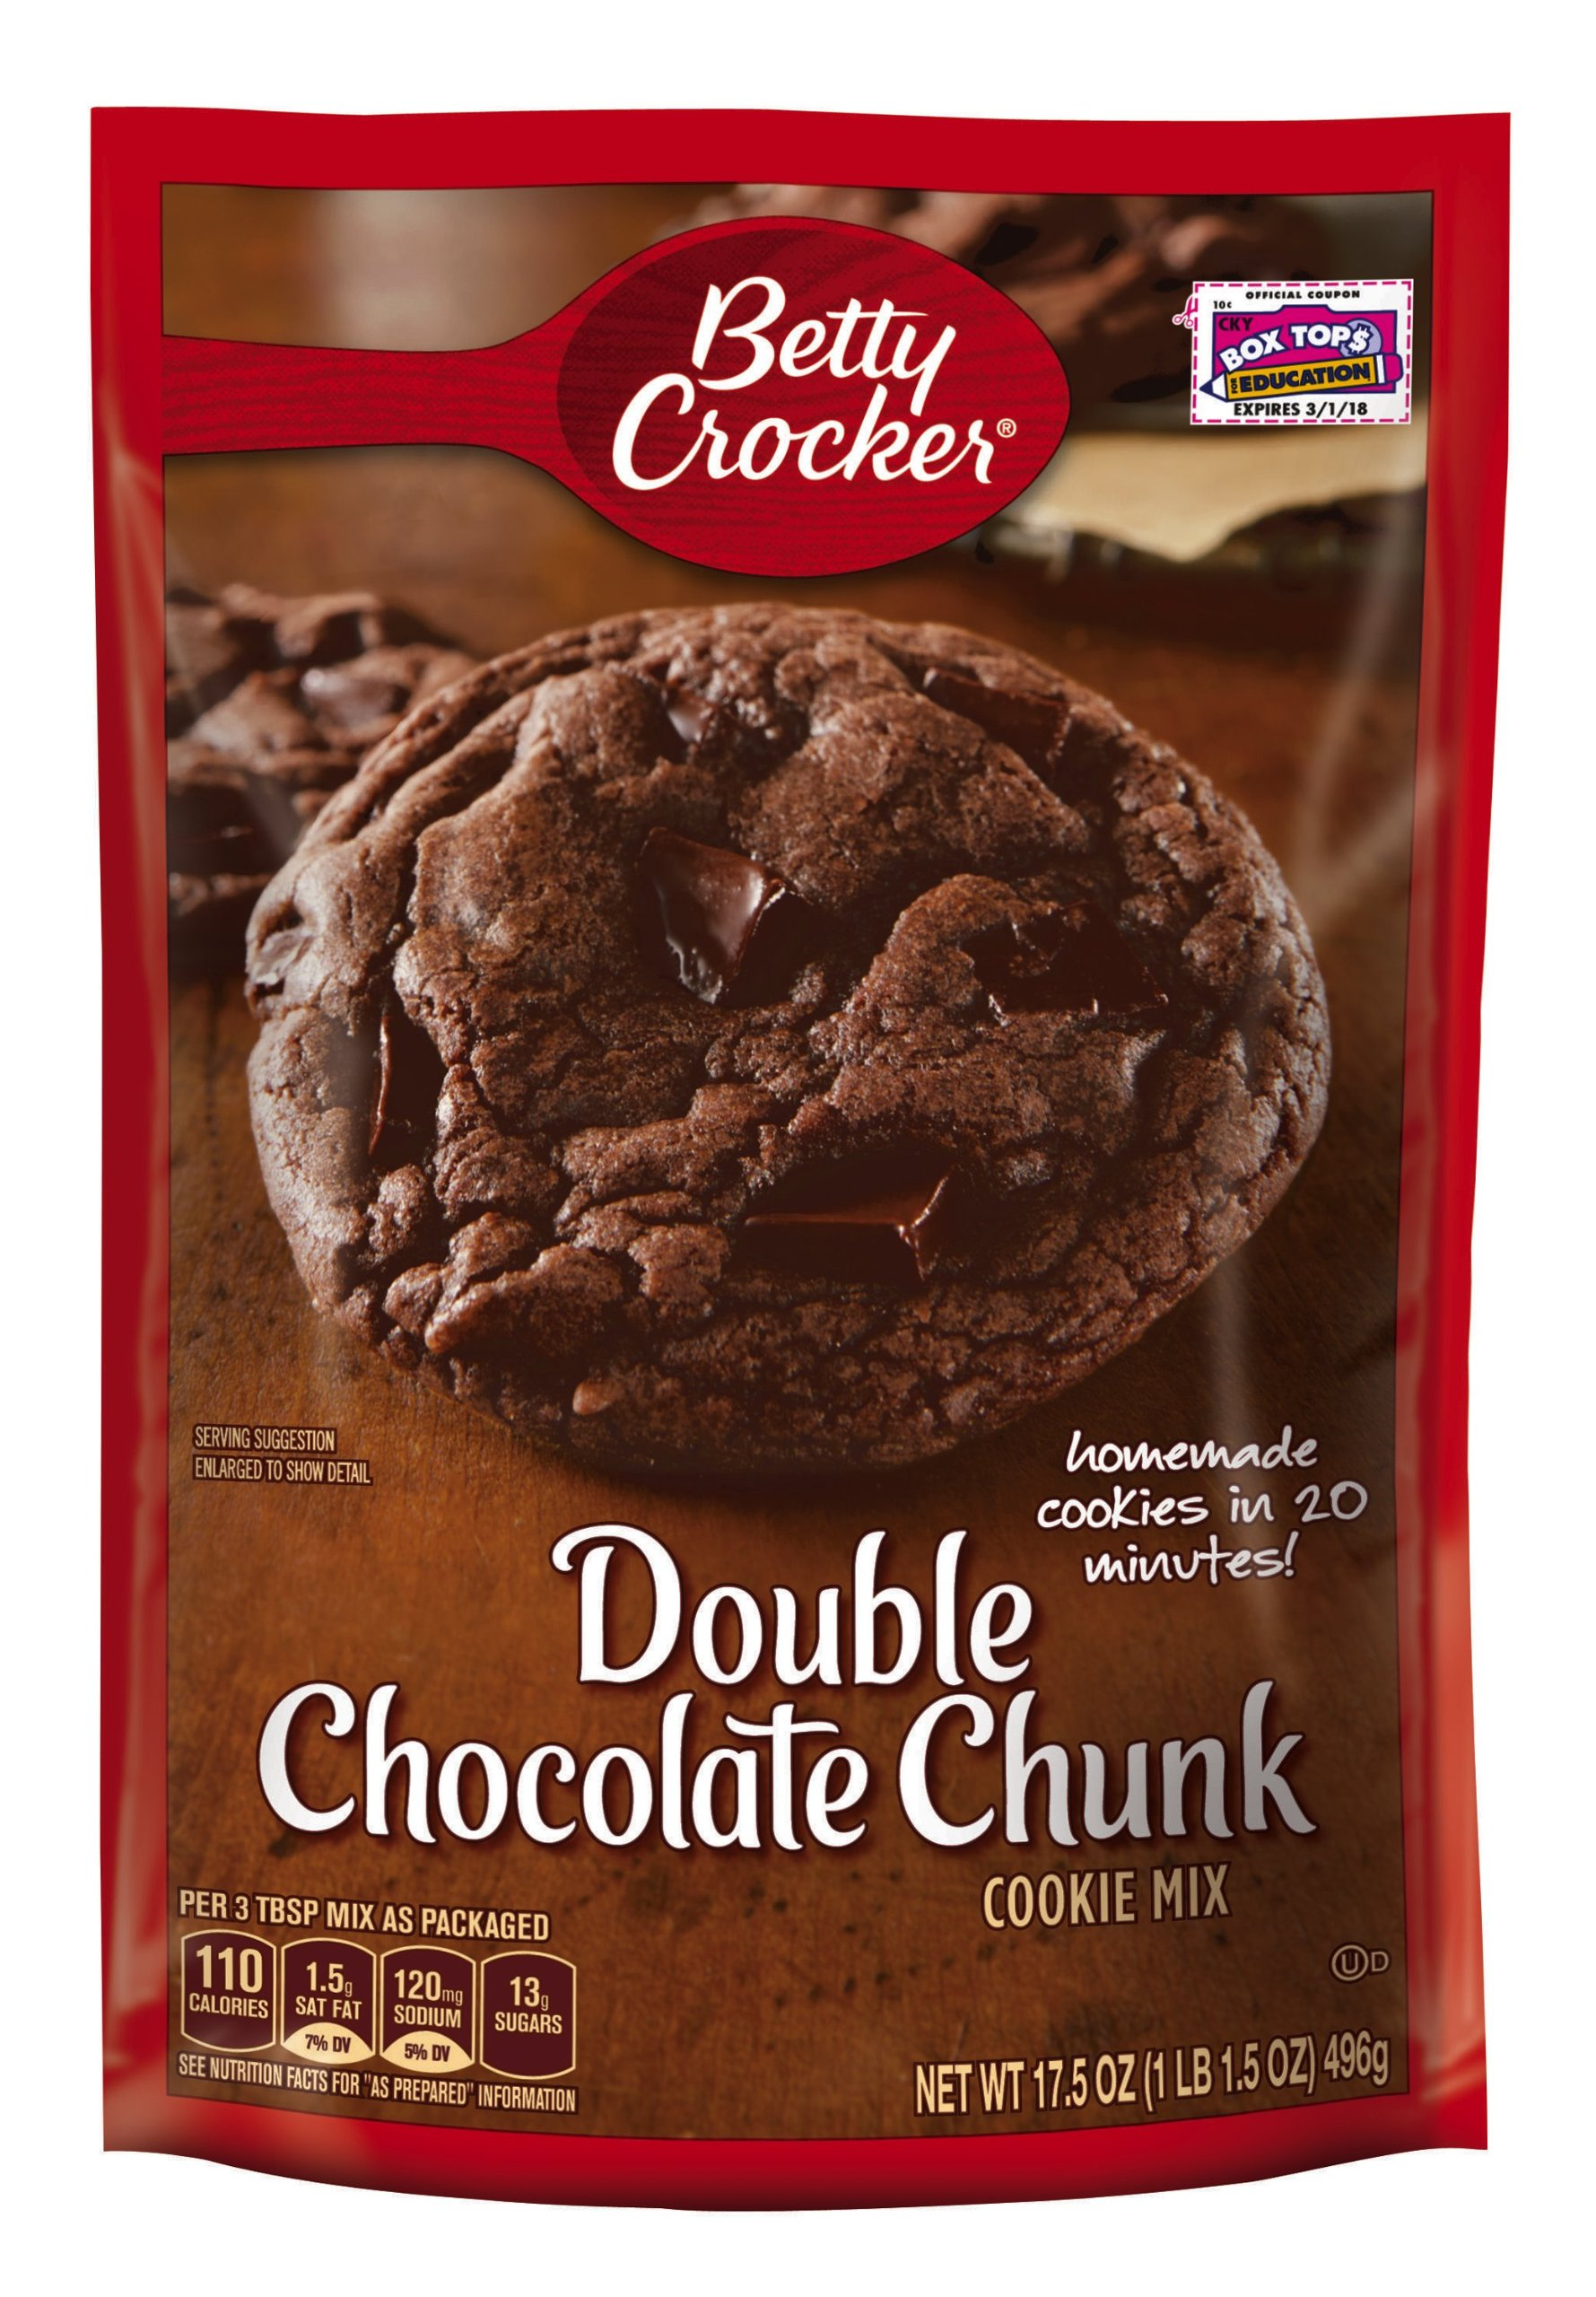 Betty Crocker Cookie Mix Double Chocolate Chunk 17.5 oz Pouch (pack of 12)